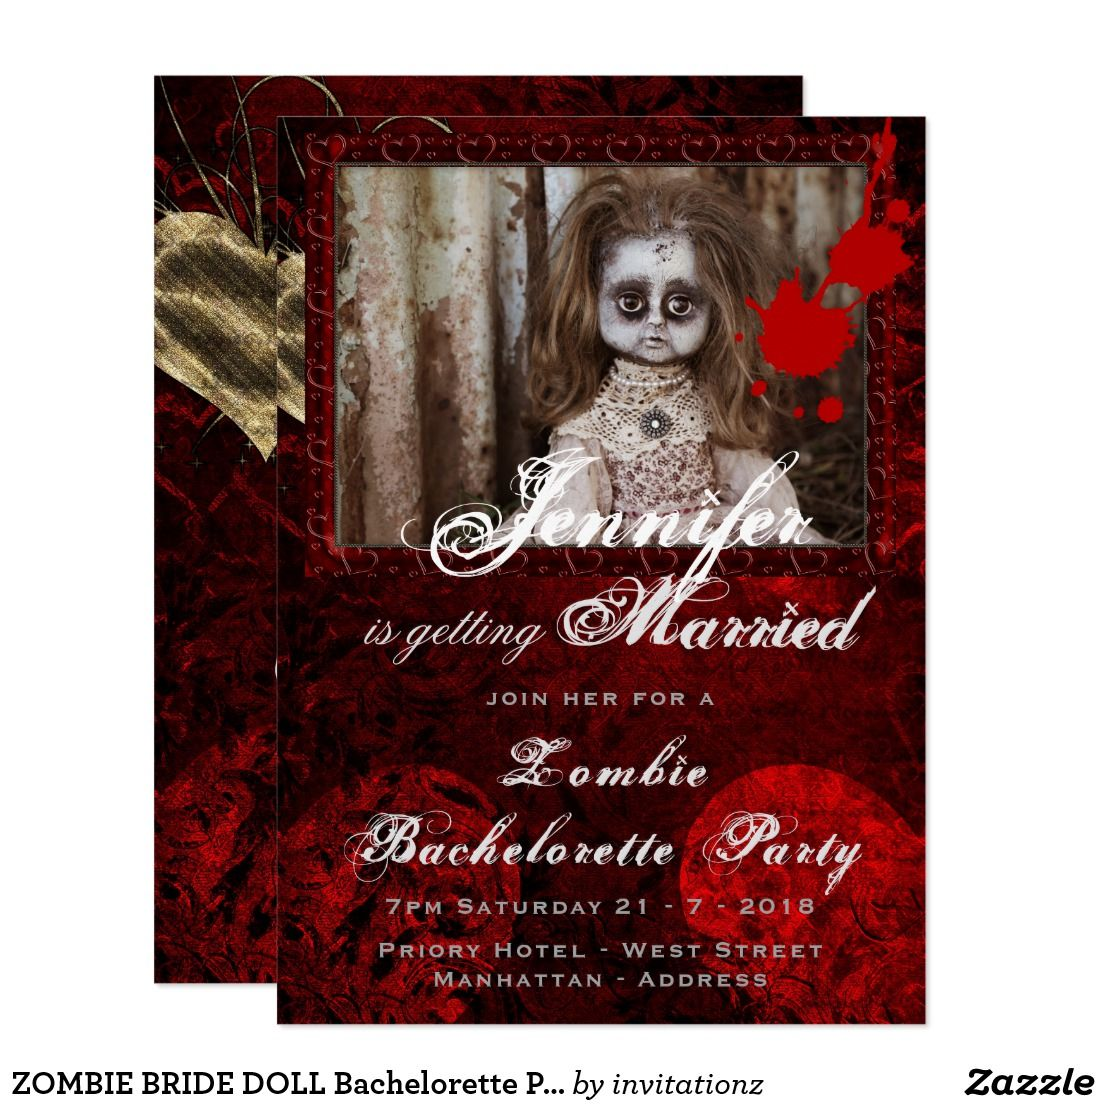 ZOMBIE BRIDE DOLL Bachelorette Party Halloween Invitation | Trending ...